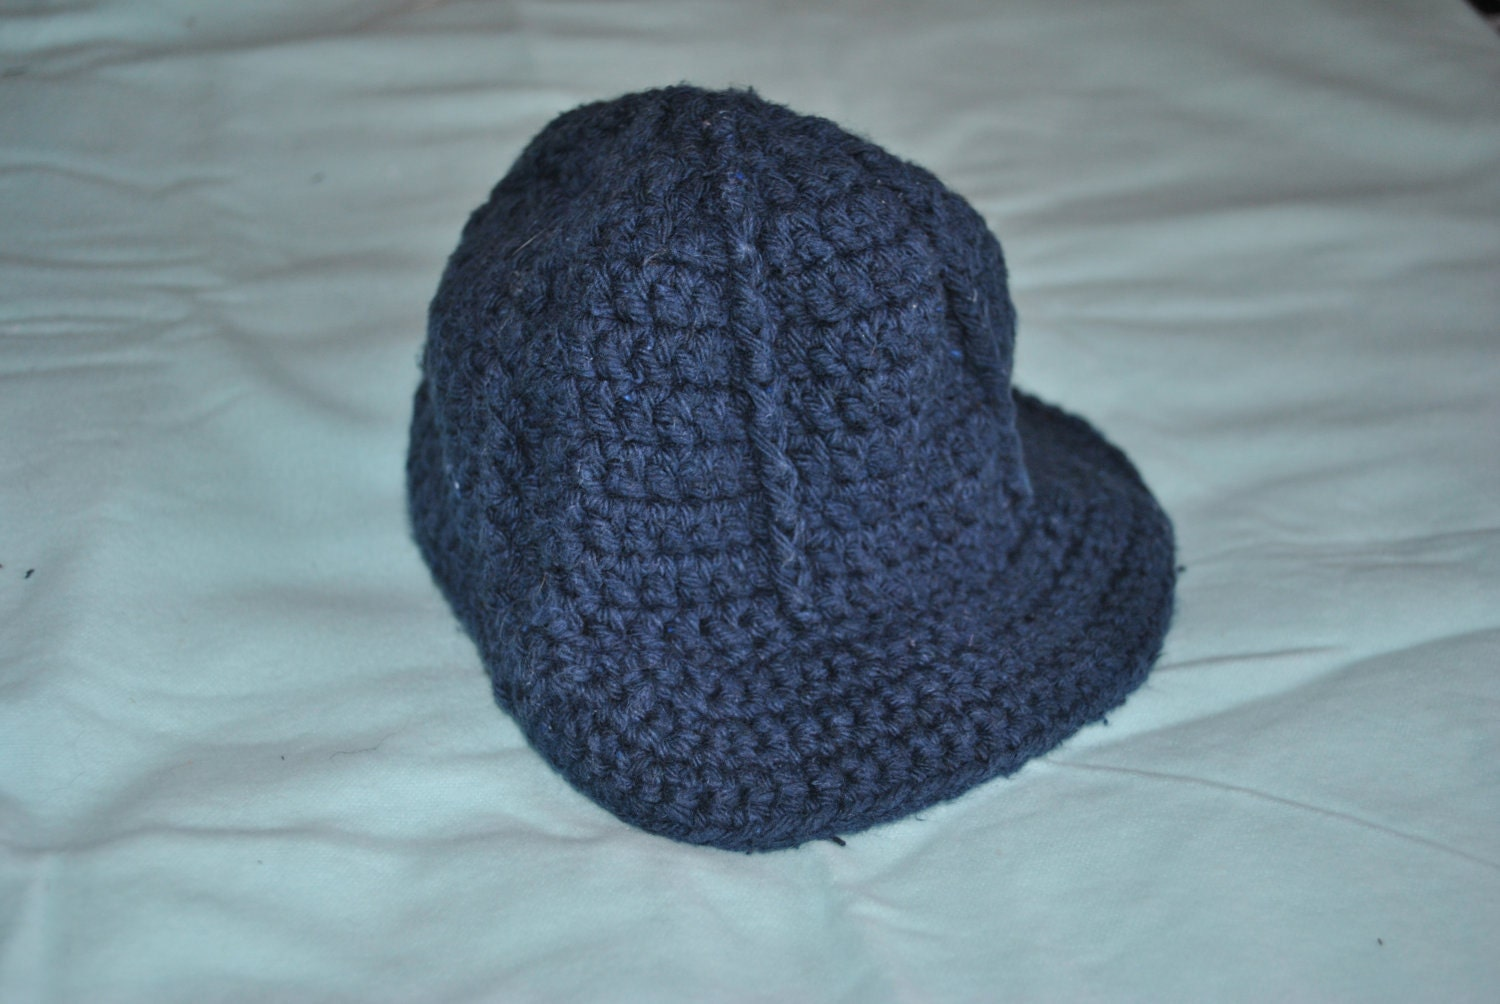 Crochet baseball cap patterns crochet patterns free crochet pattern baby baseball hat for sale bankloansurffo Gallery